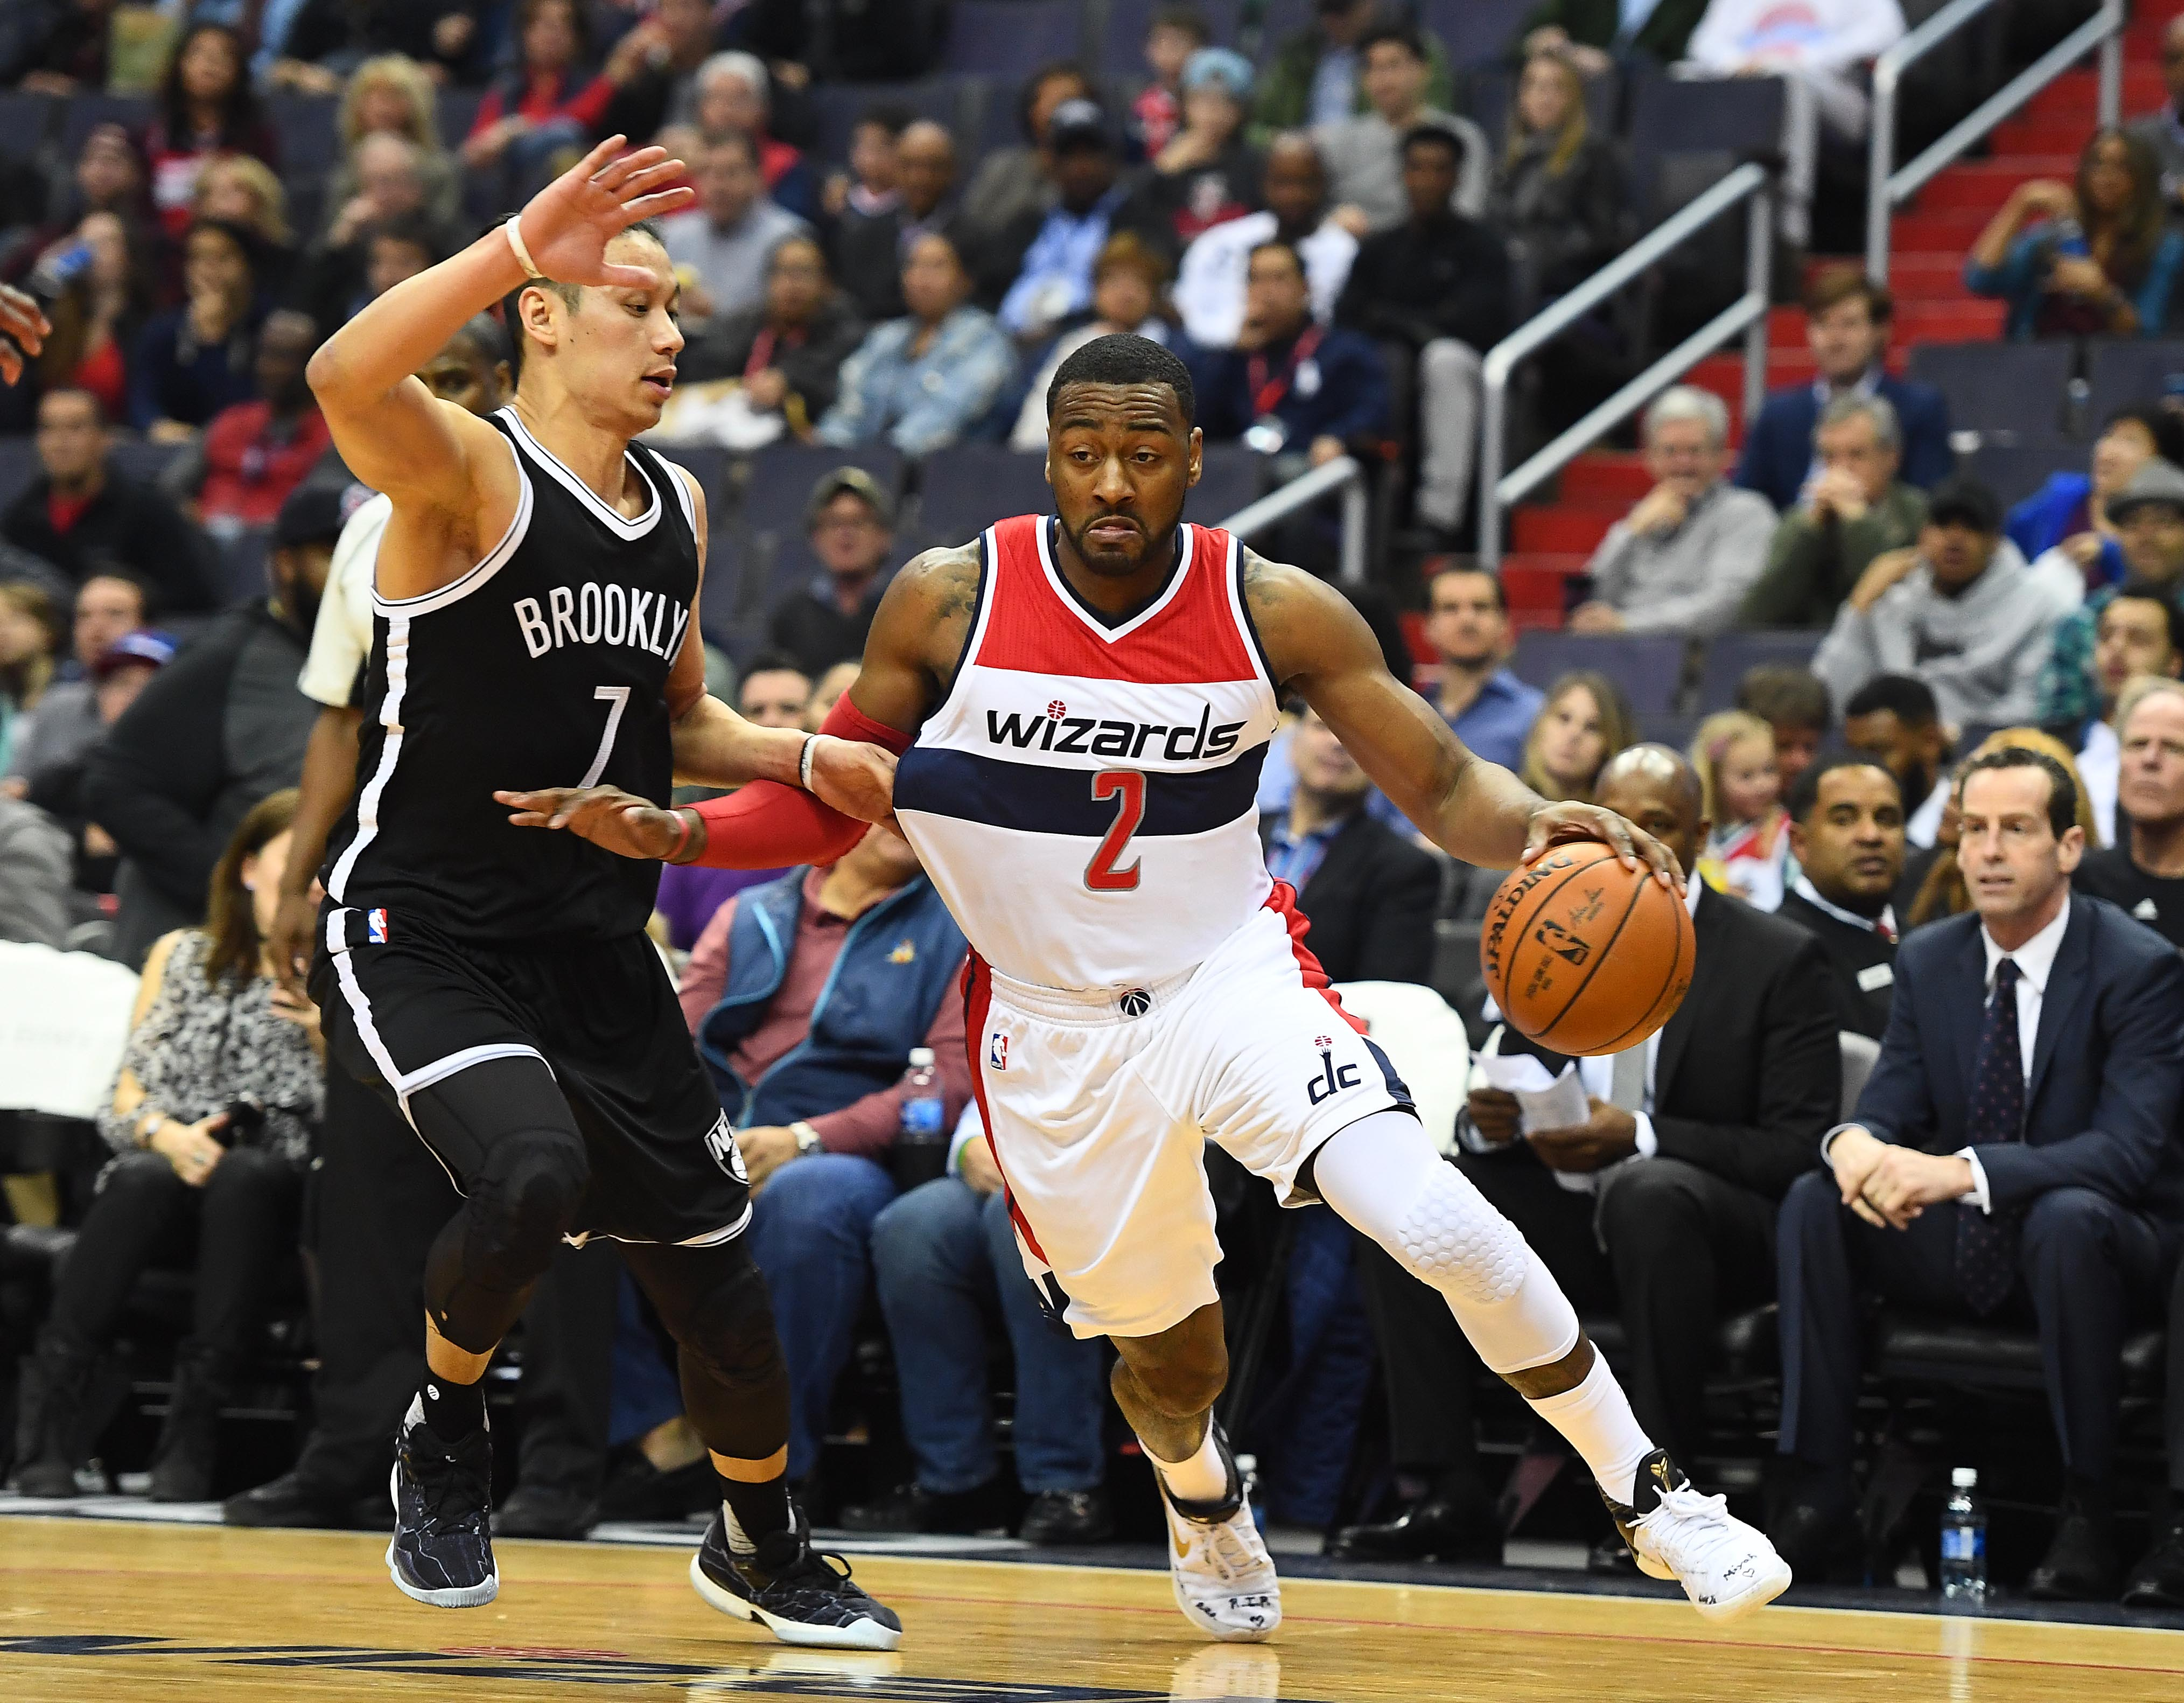 9968109-nba-brooklyn-nets-at-washington-wizards-1